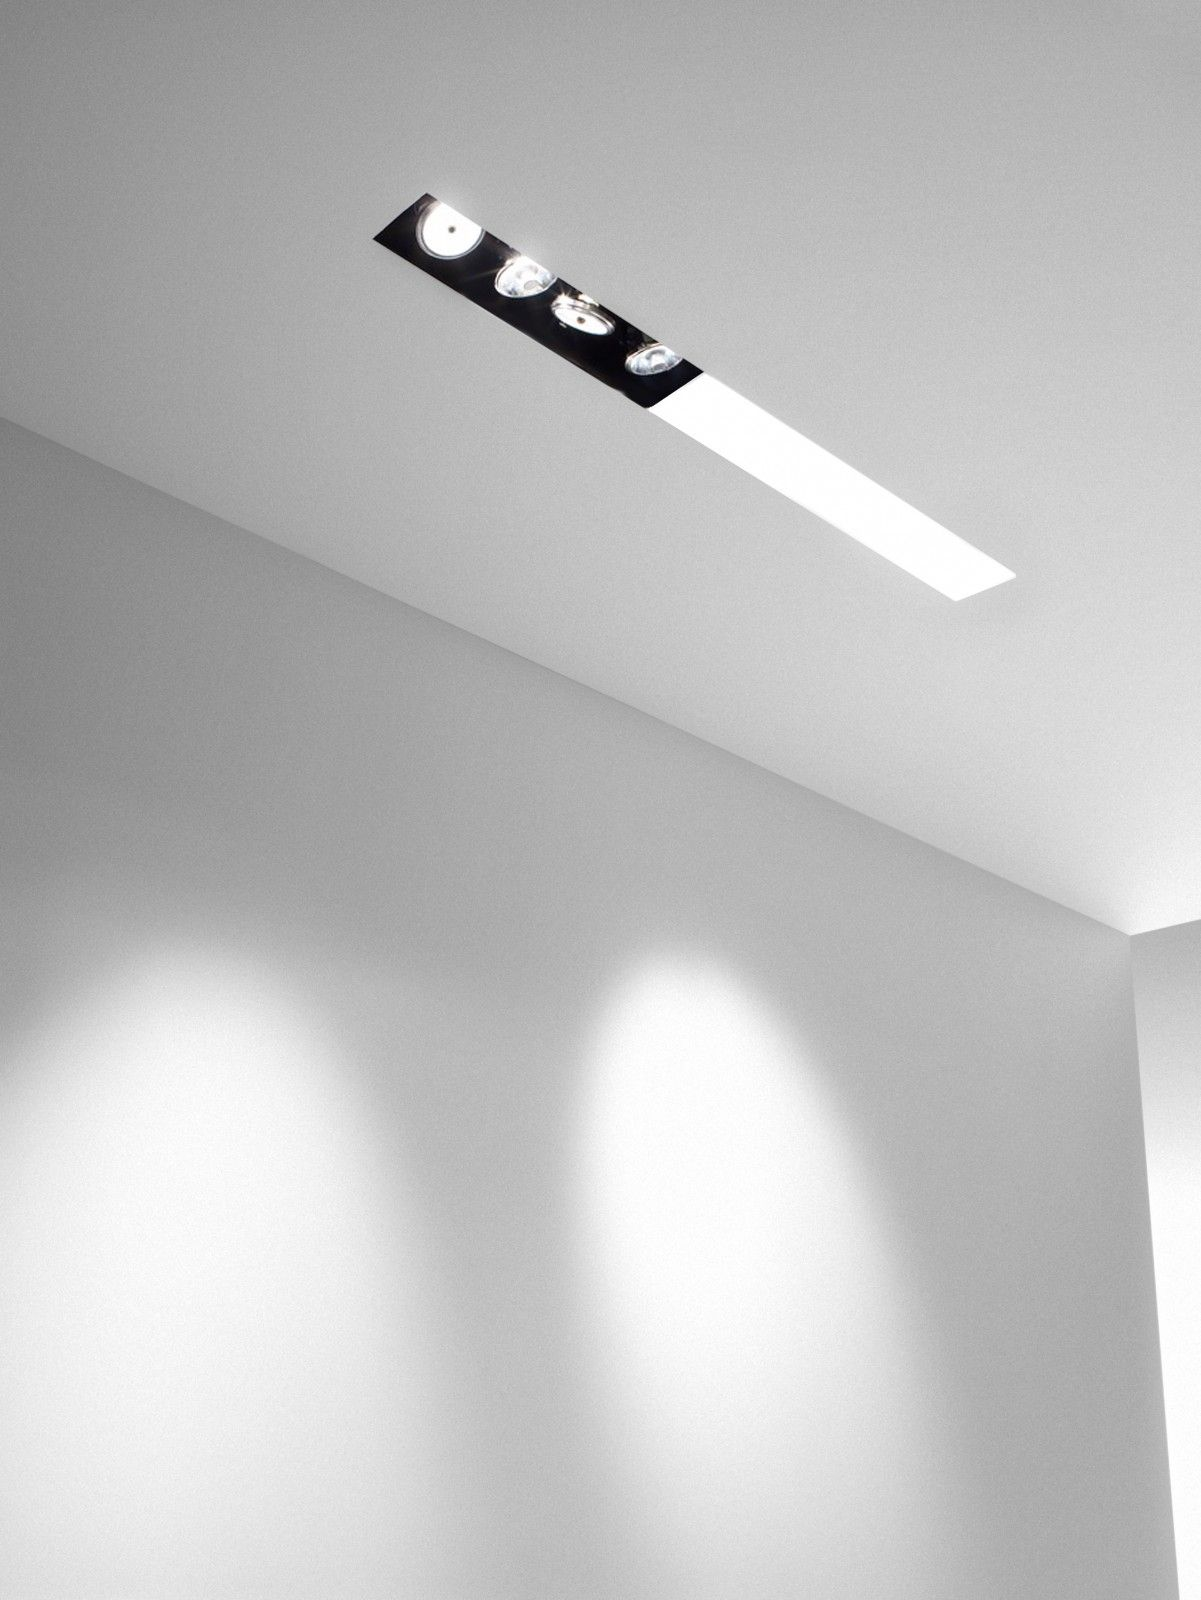 Trimless recessed lighting systems featuring extruded aluminium trimless recessed lighting systems featuring extruded aluminium profiles creating a linear and continuous opening aloadofball Choice Image